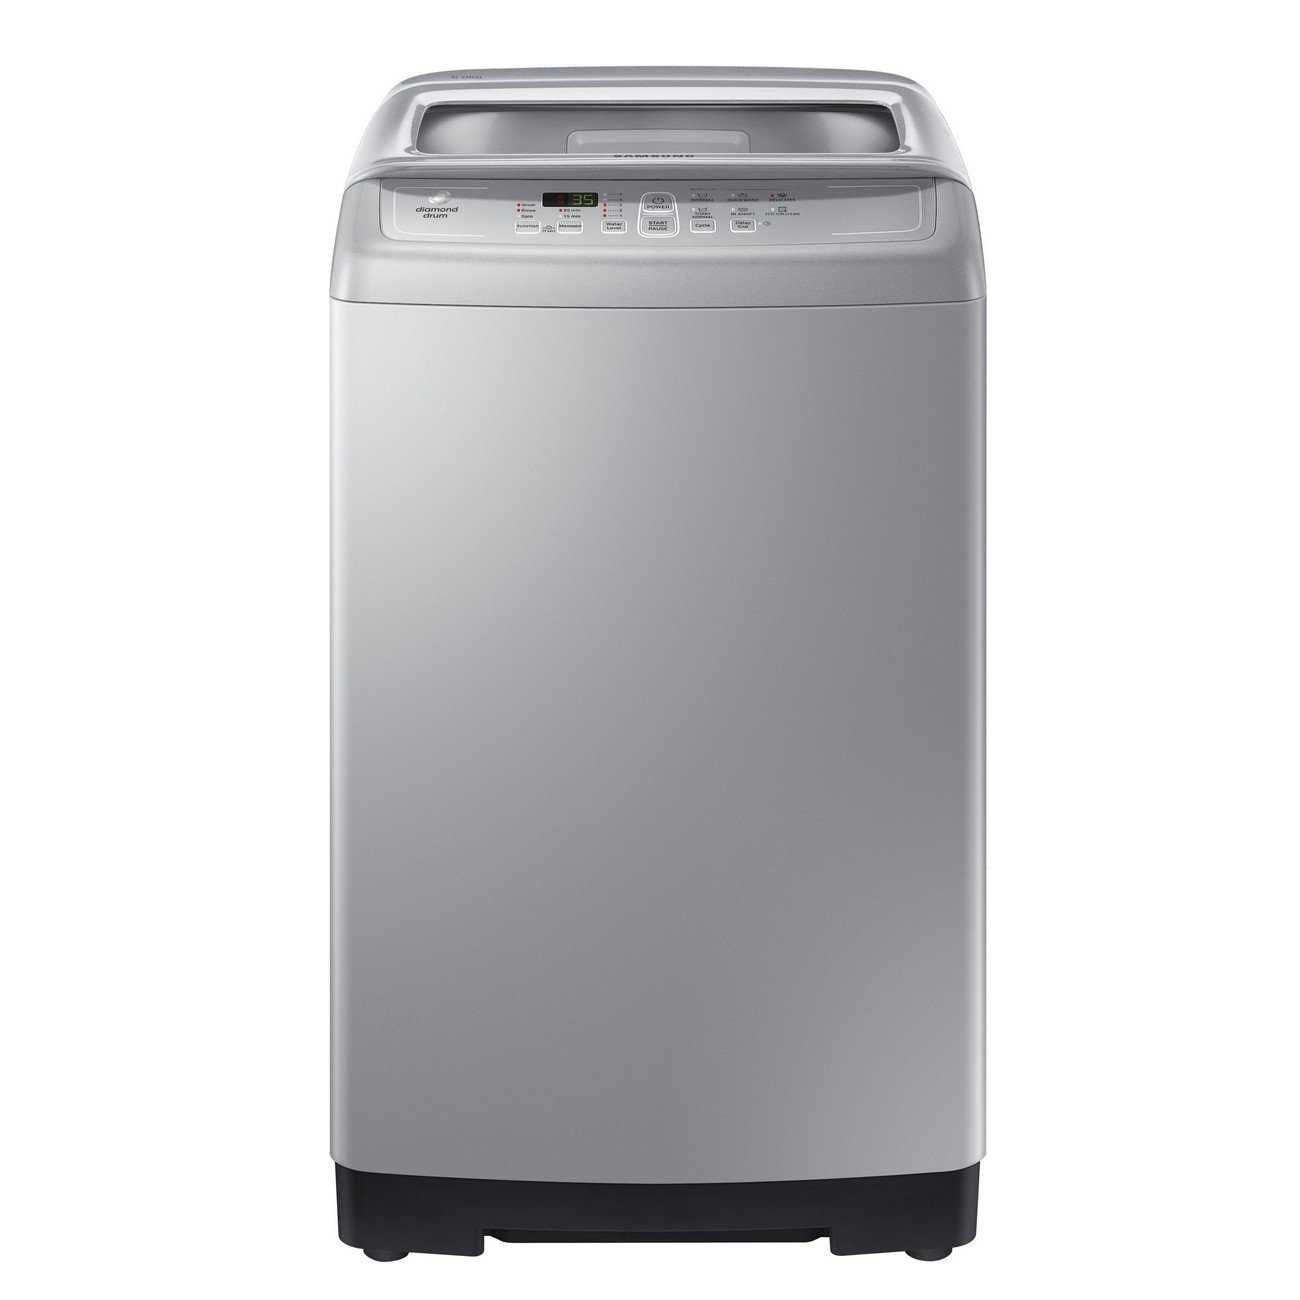 Samsung WA60M4100HY 6 Kg Fully Automatic Top Loading Washing Machine